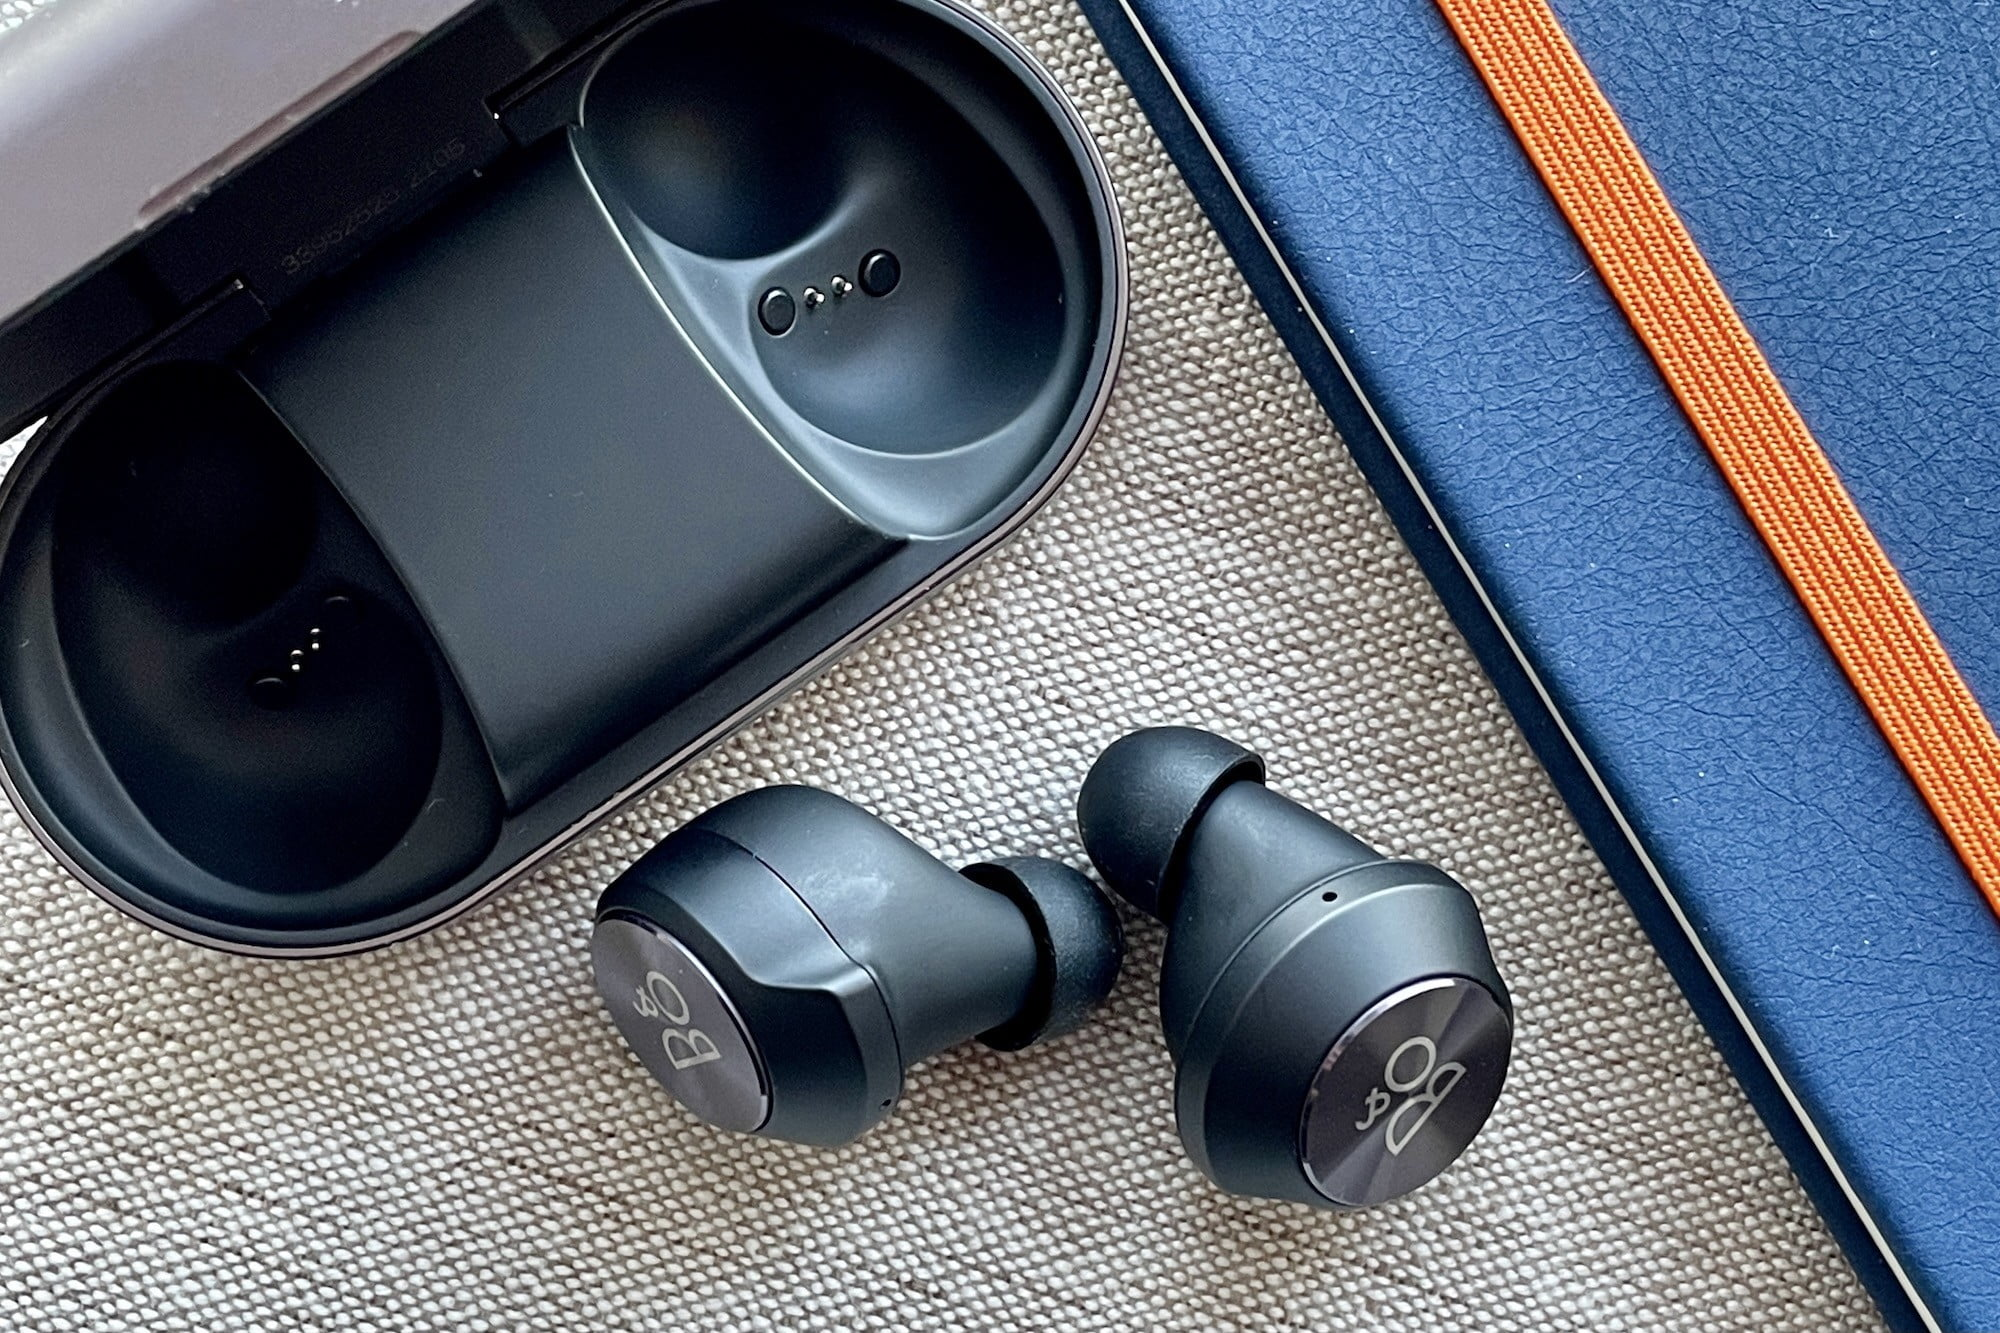 Beoplay EQ earbuds out the case, seen from the side.